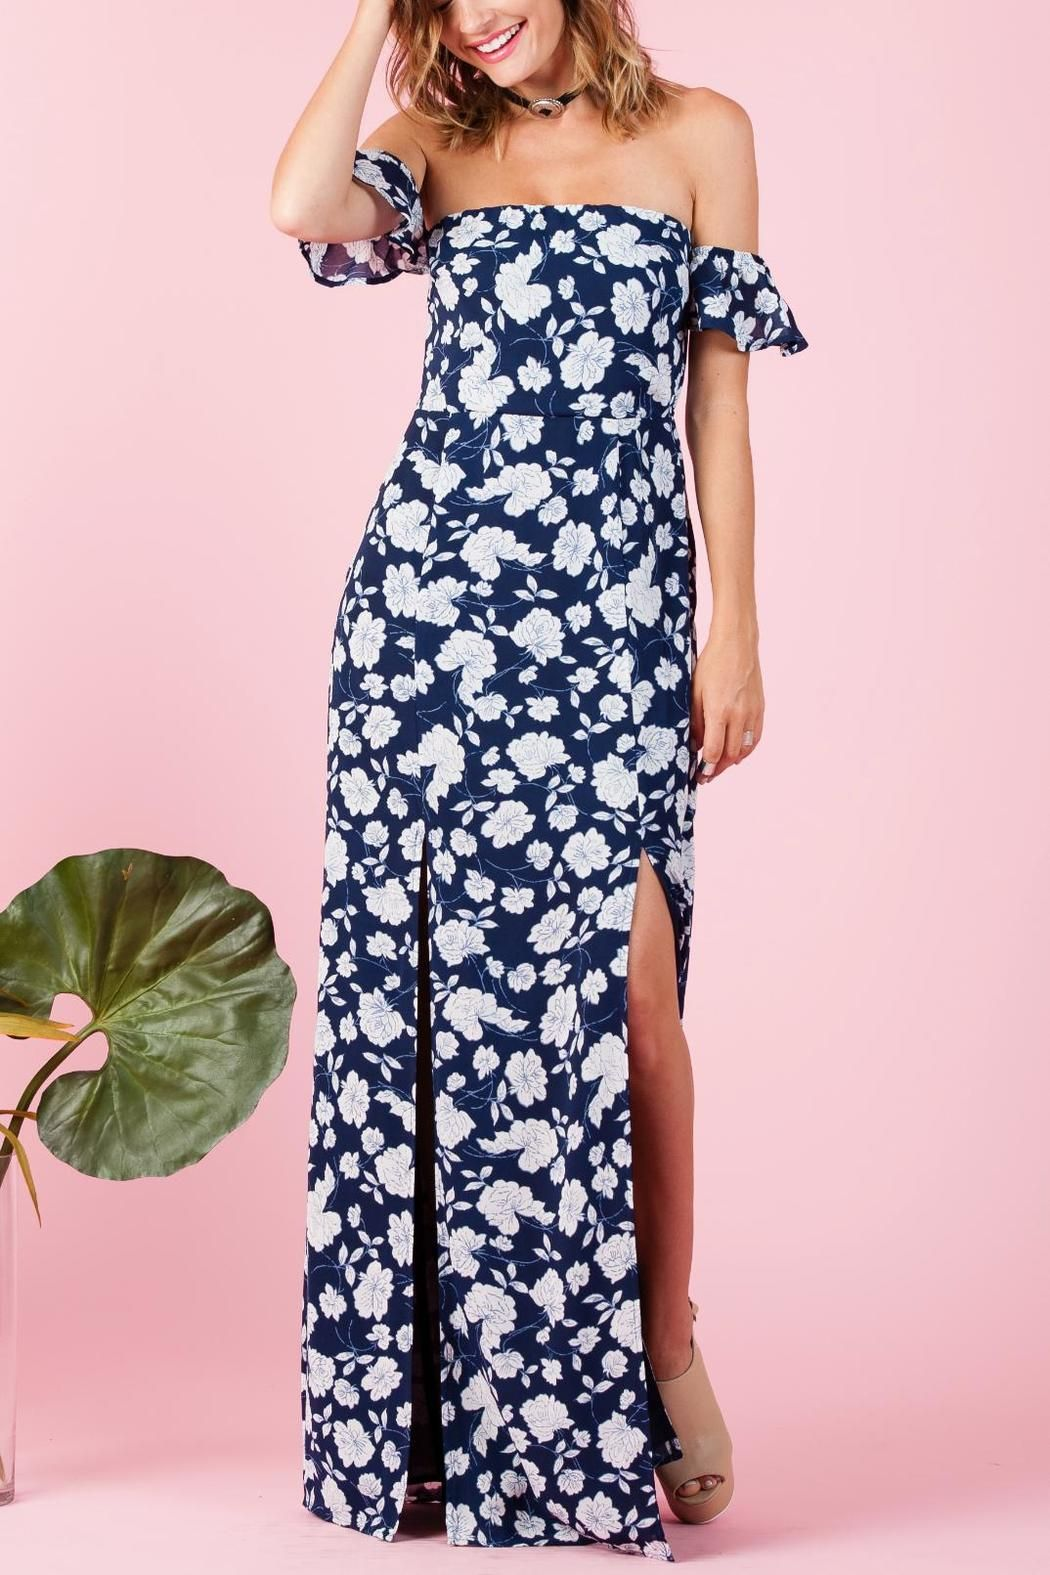 89f4e2712331 Cute floral off shoulder dress with two front slits. Side zipper with  elastic drop down shoulder sleeves. Lines. Wear with cute heels or  platforms and you ...